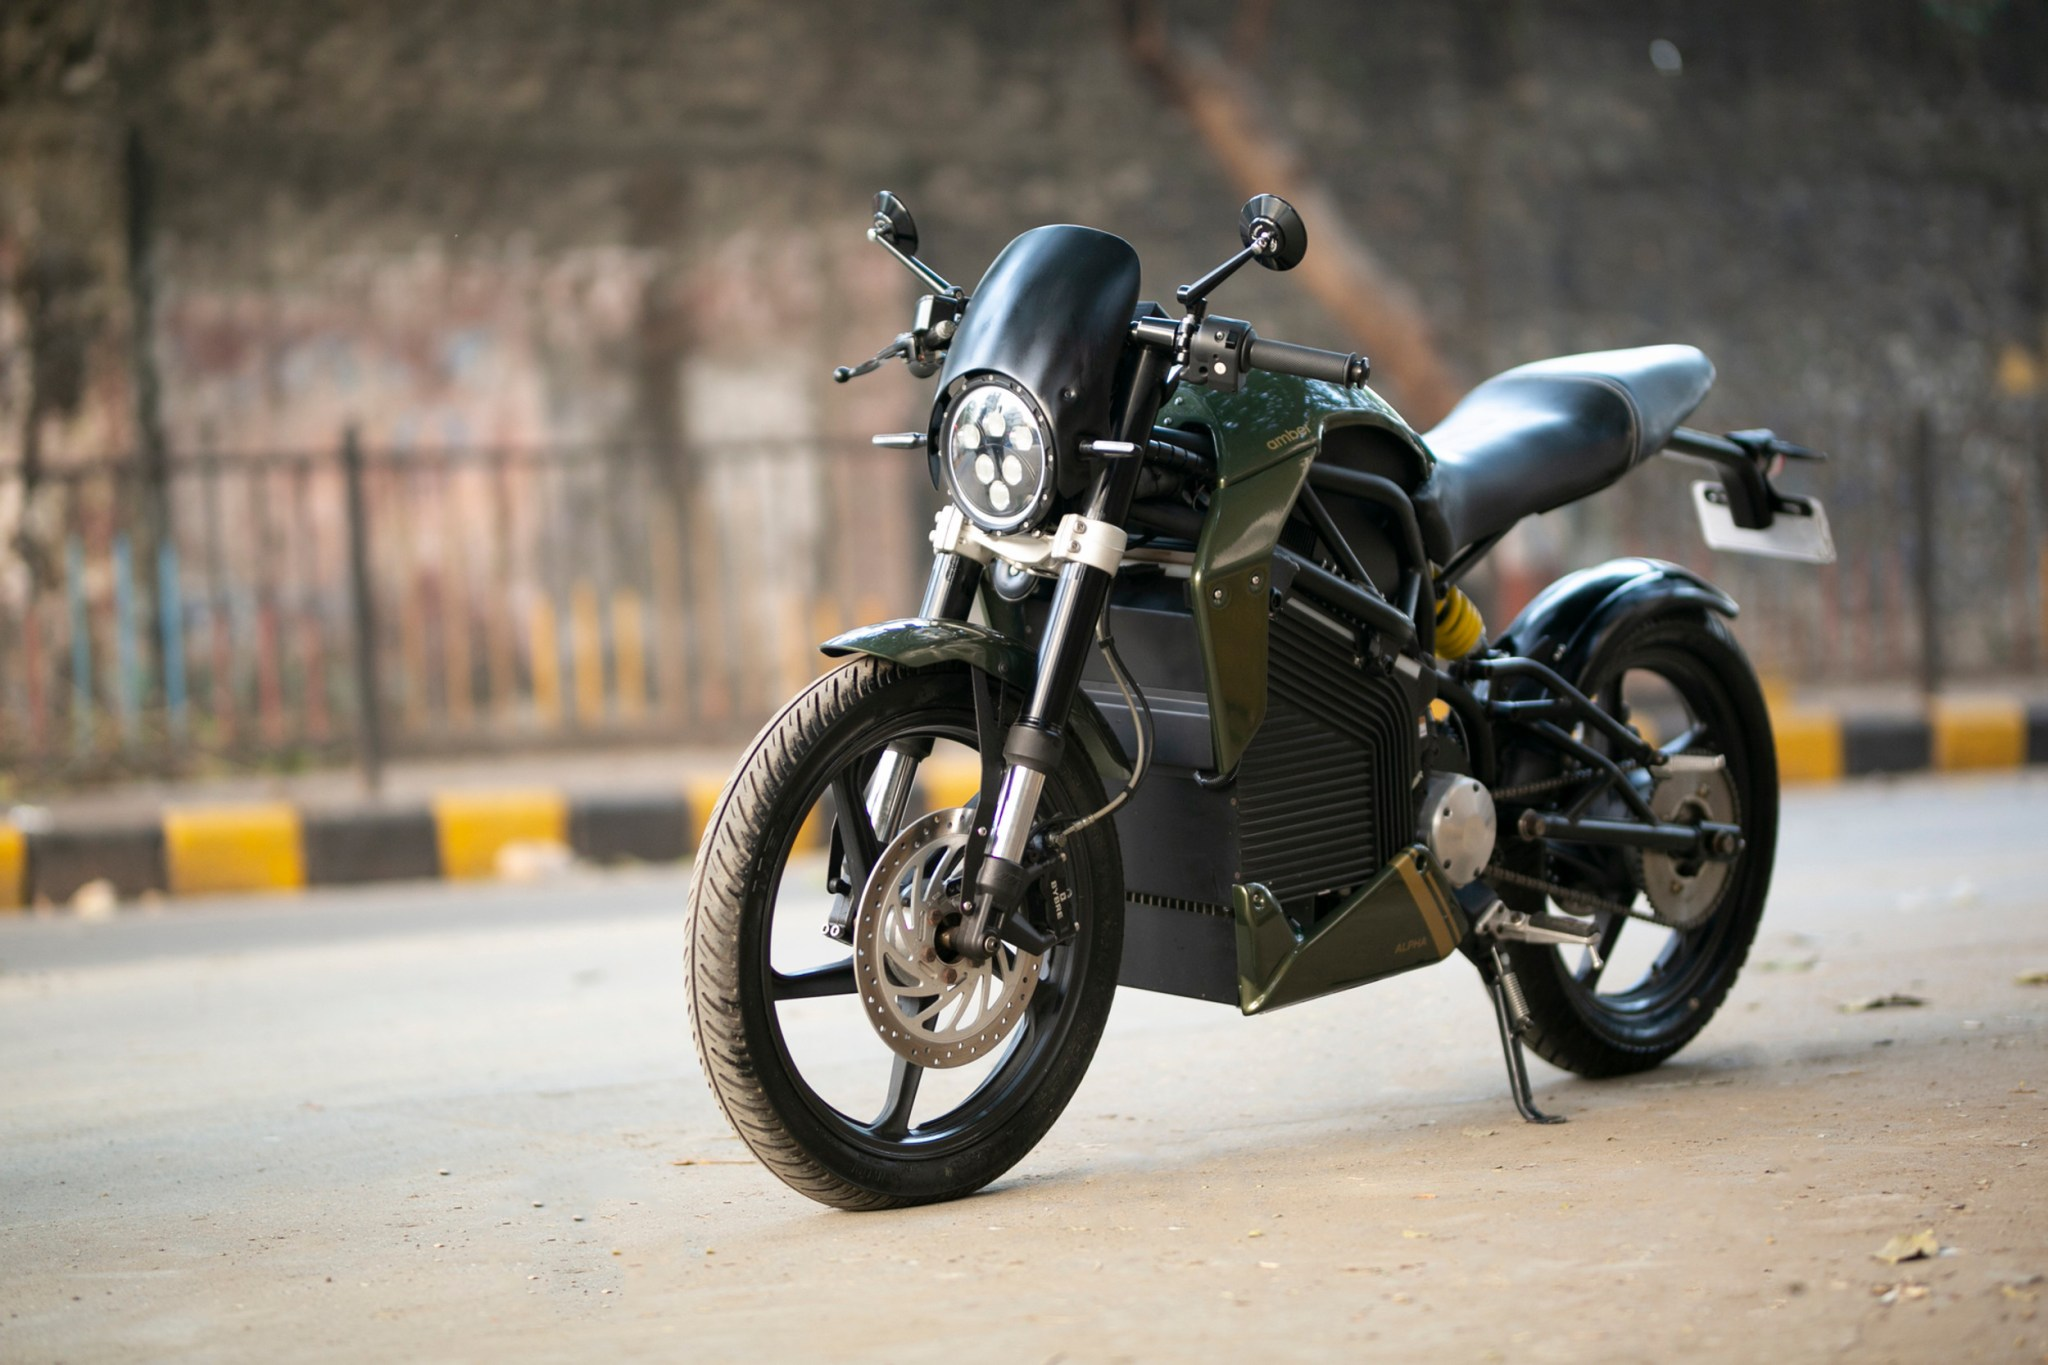 Amber Automotive to build premium electric motorcycles in